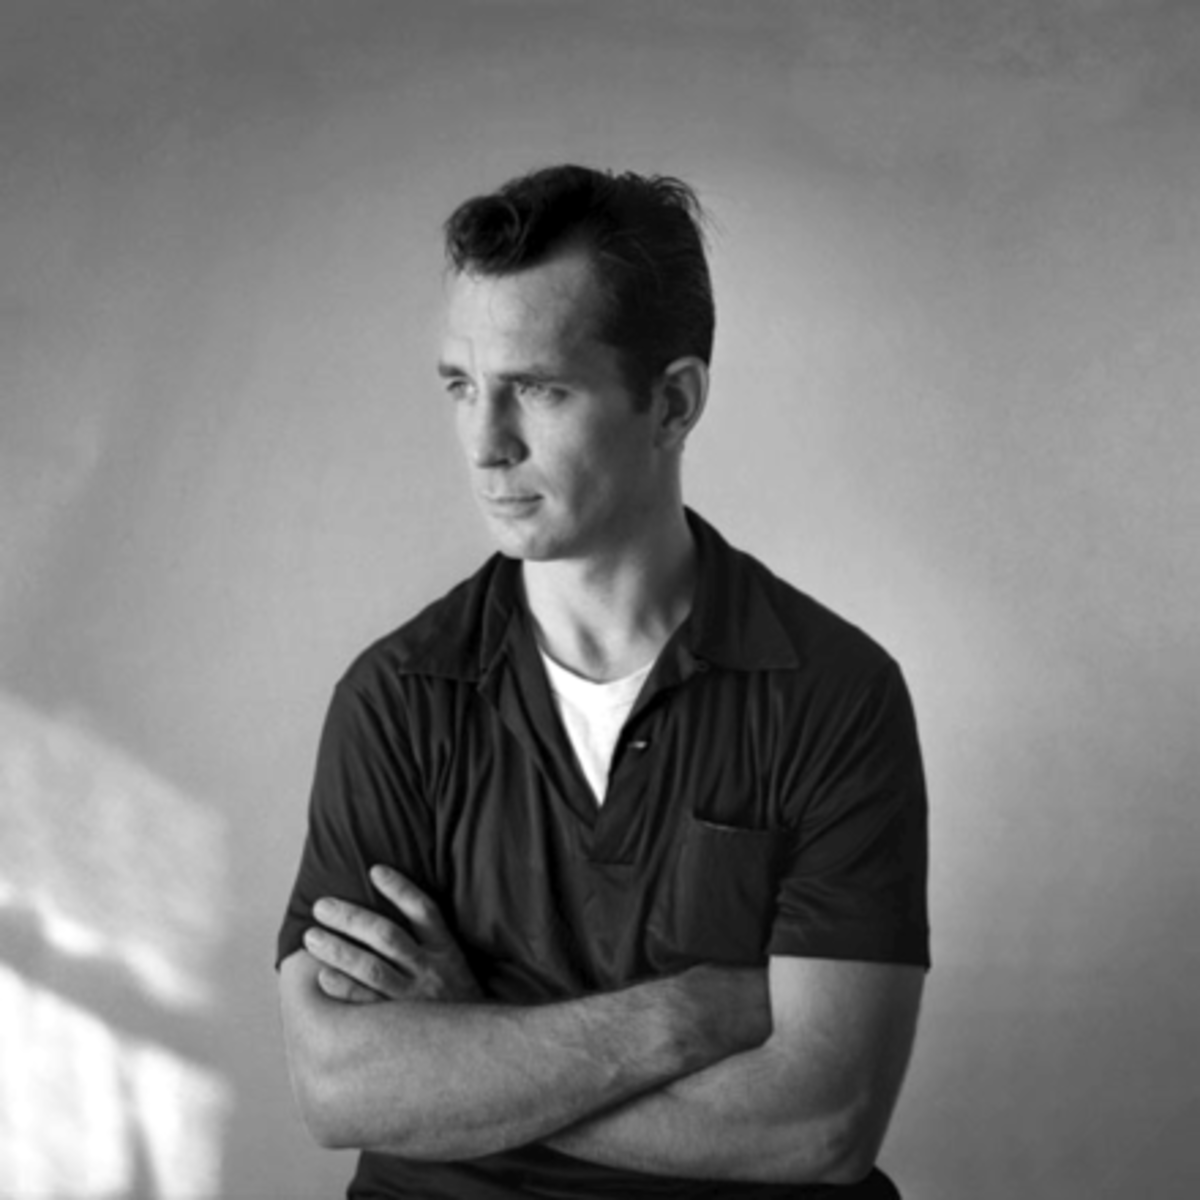 """It ain't whatcha write, it's the way atcha write it."" Jack Kerouac"